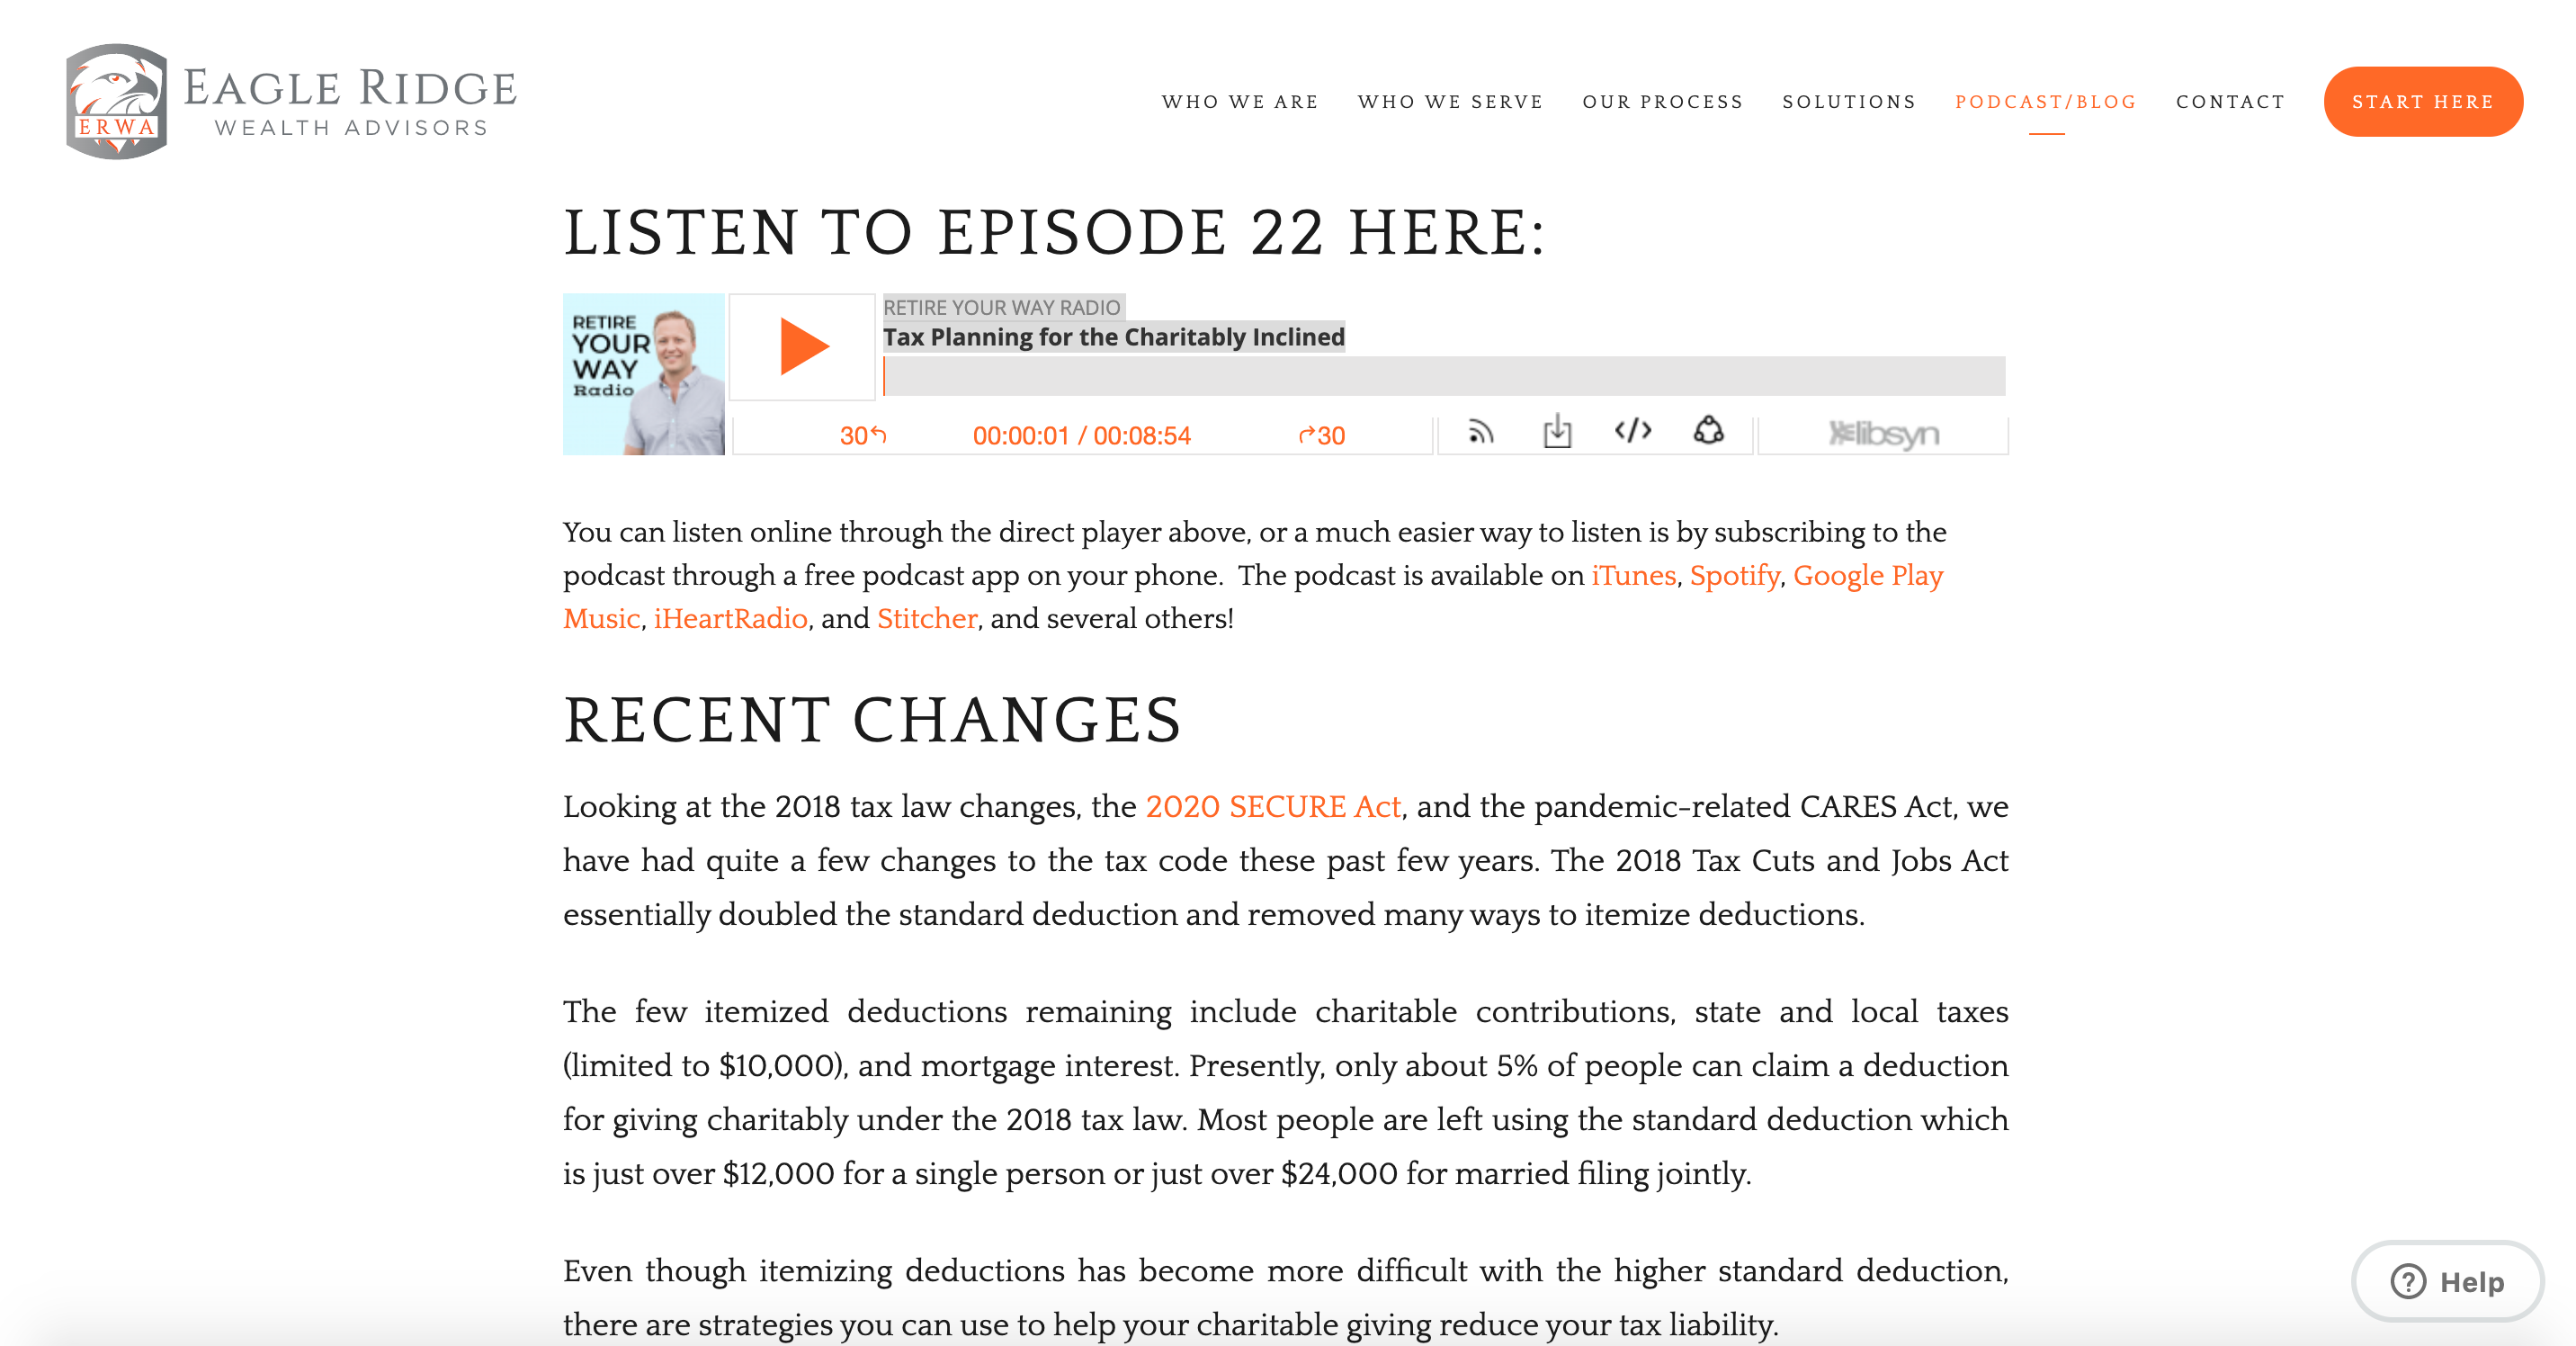 Eagle Ridge Wealth Advisors podcast